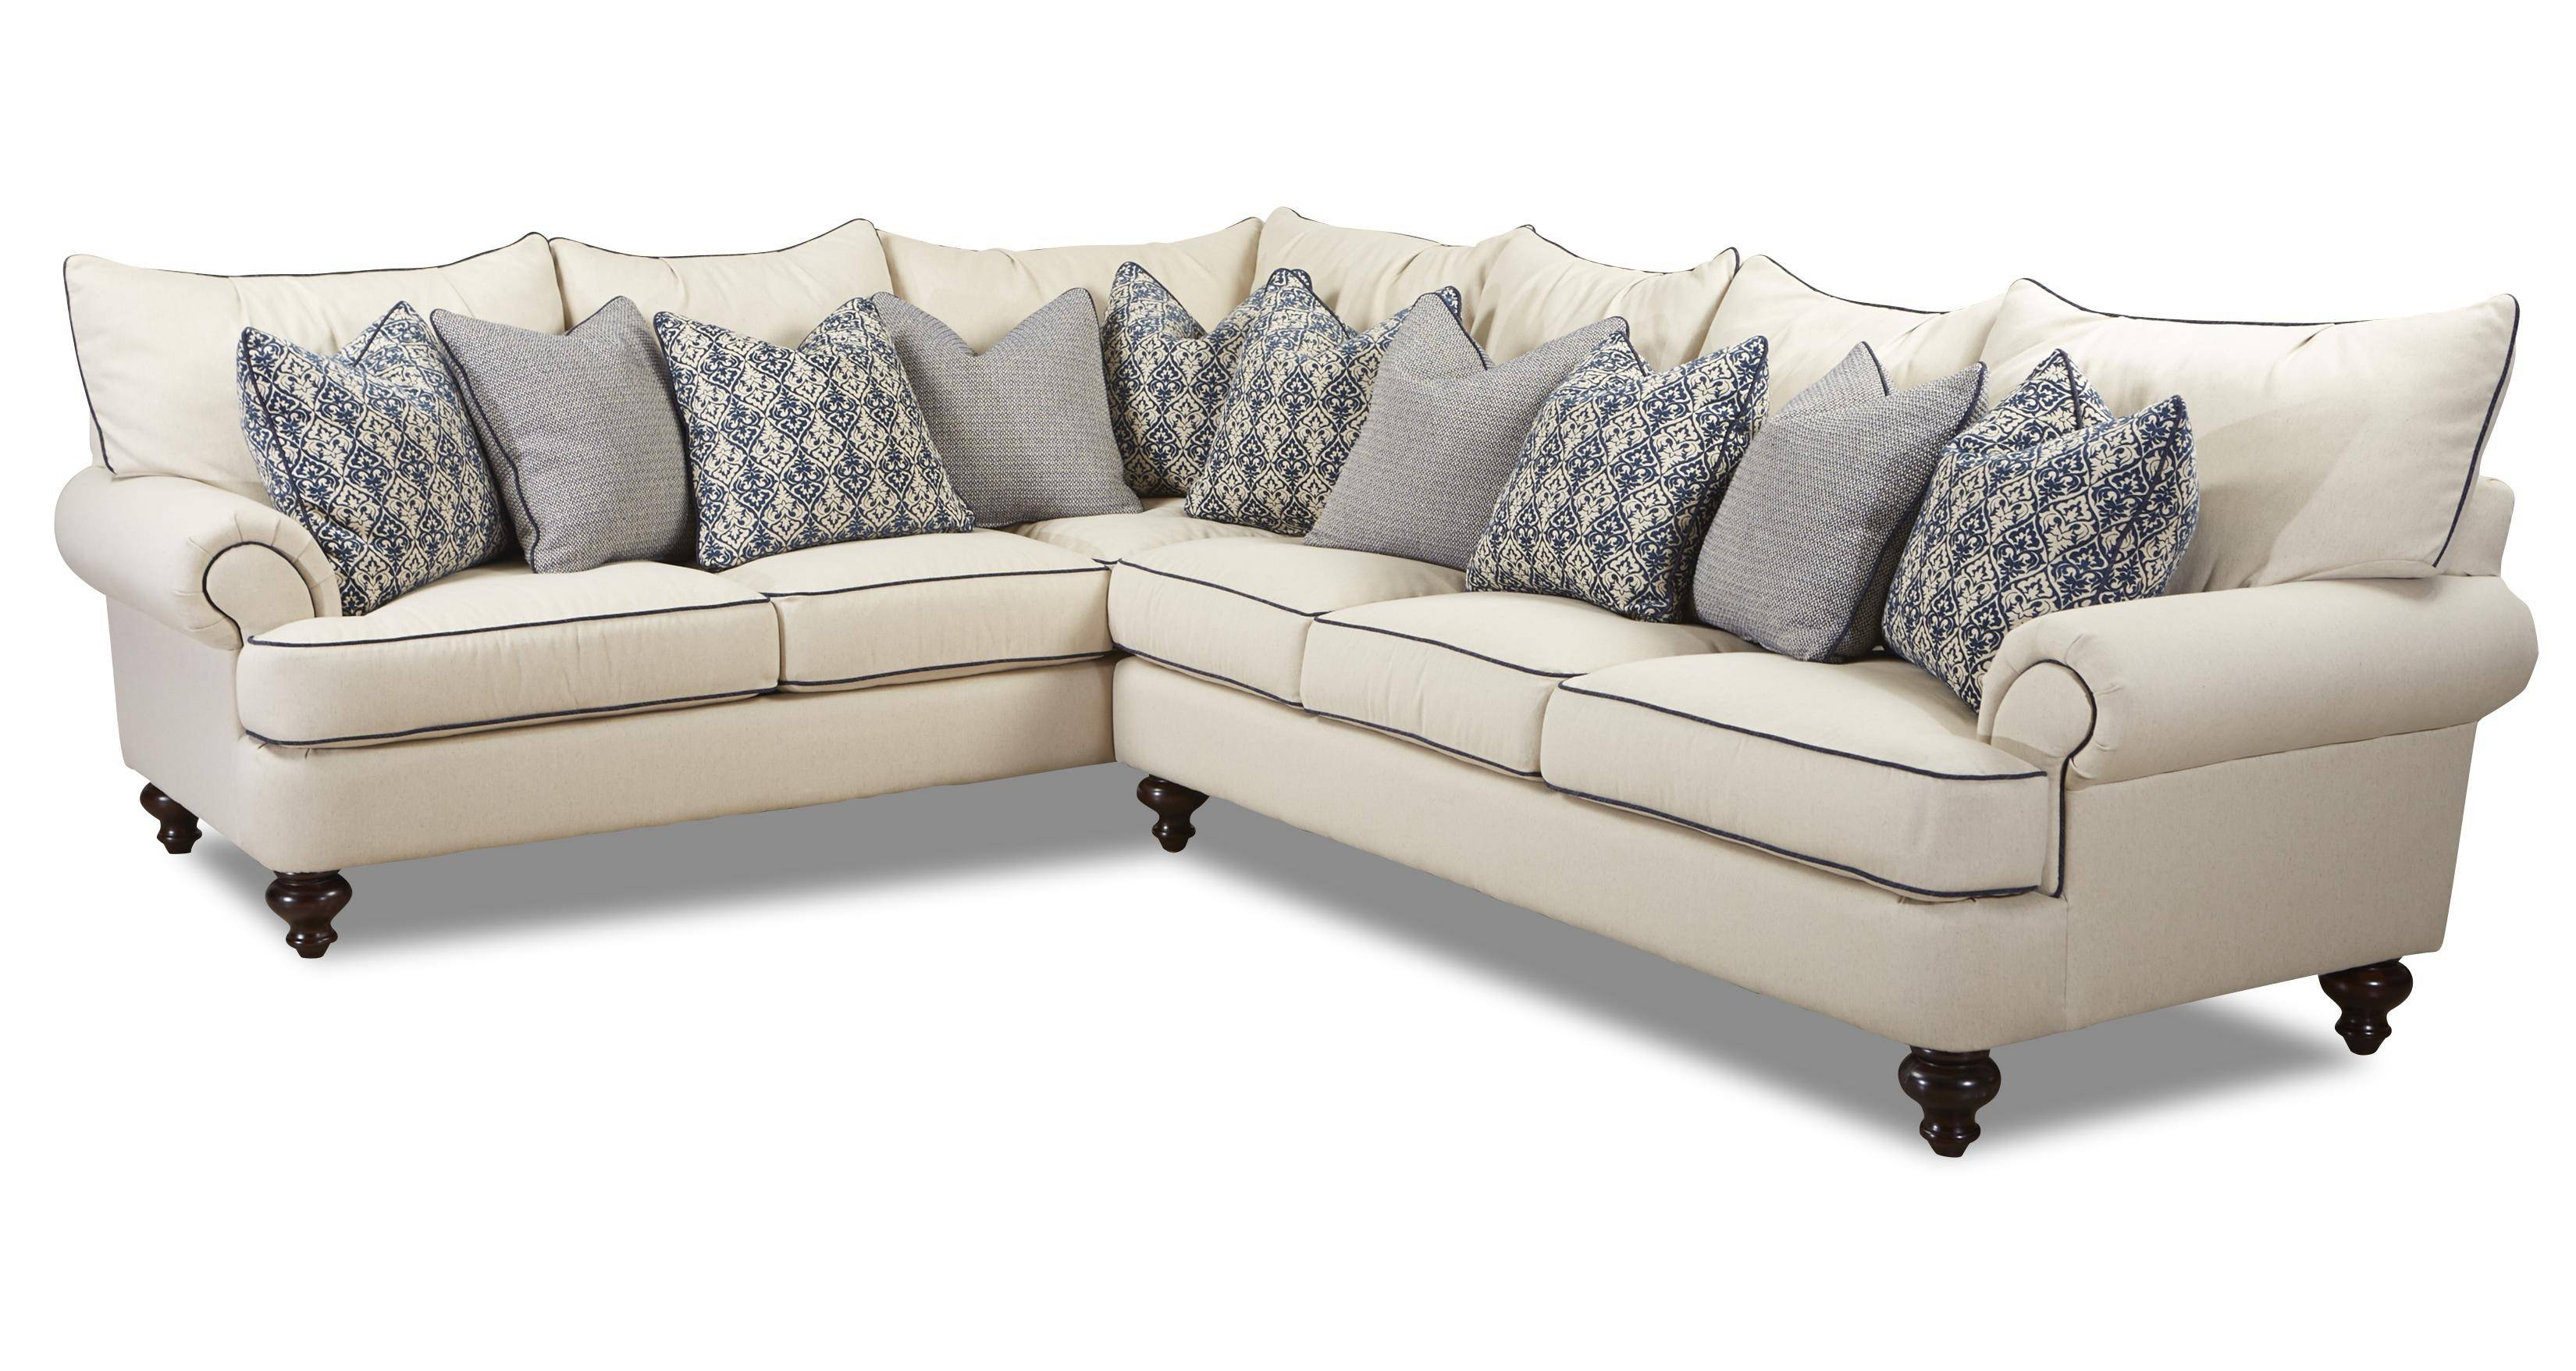 Klaussner Ashworth Shabby Chic Sectional Sofa – Wayside Furniture With Shabby Chic Sectional Couches (View 4 of 15)